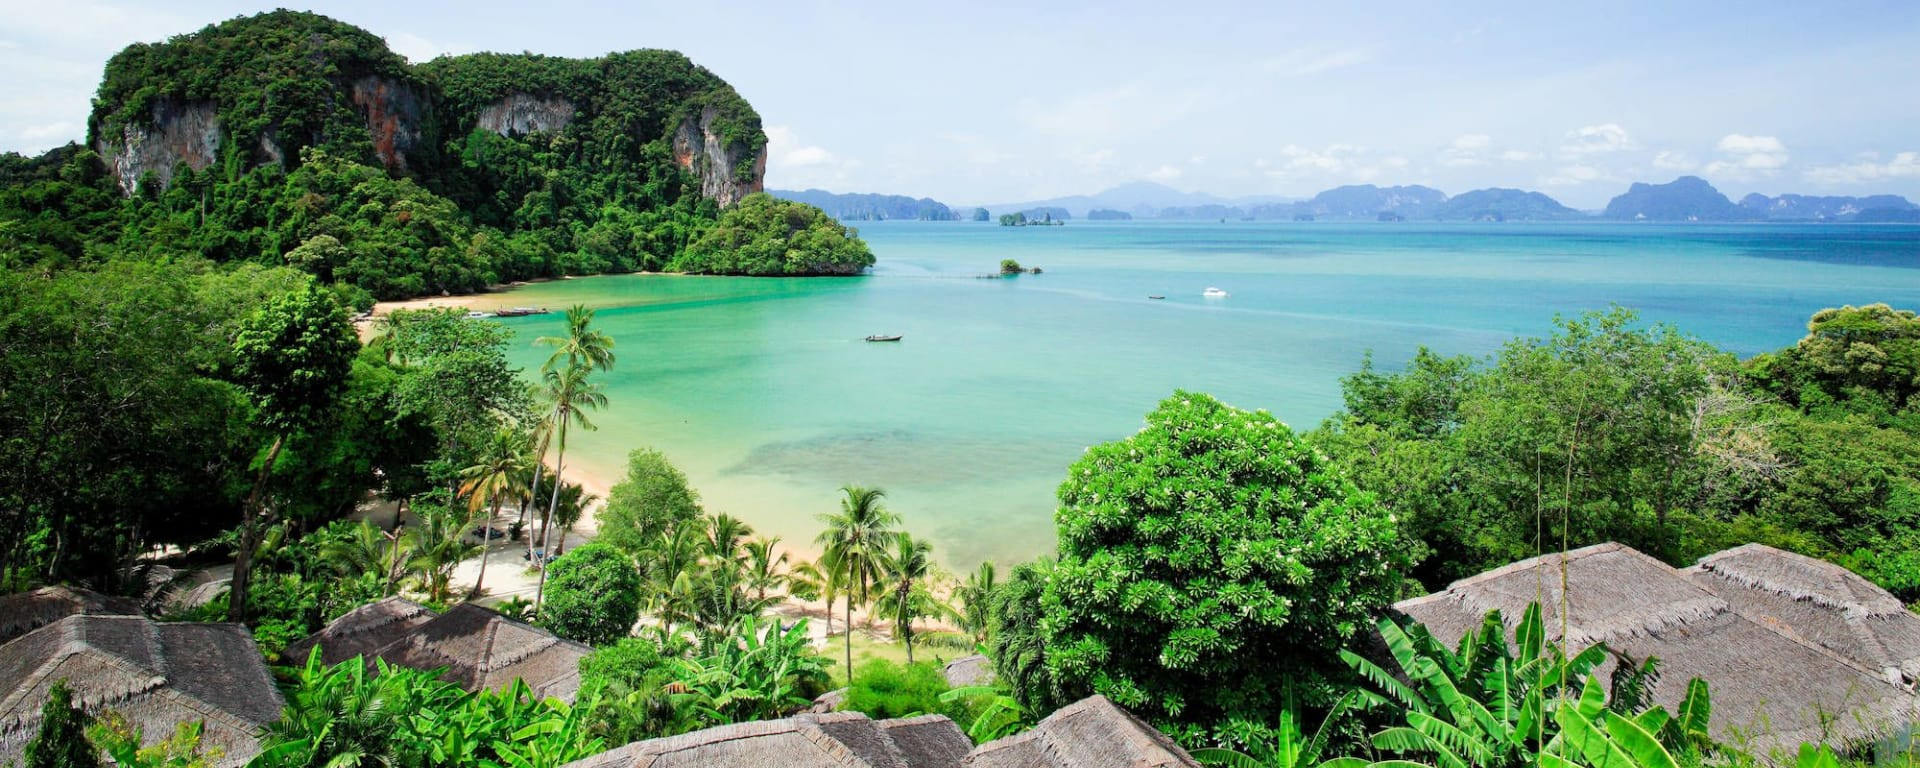 Paradise Koh Yao in Ko Yao: Overview | from the Hotel to the sea